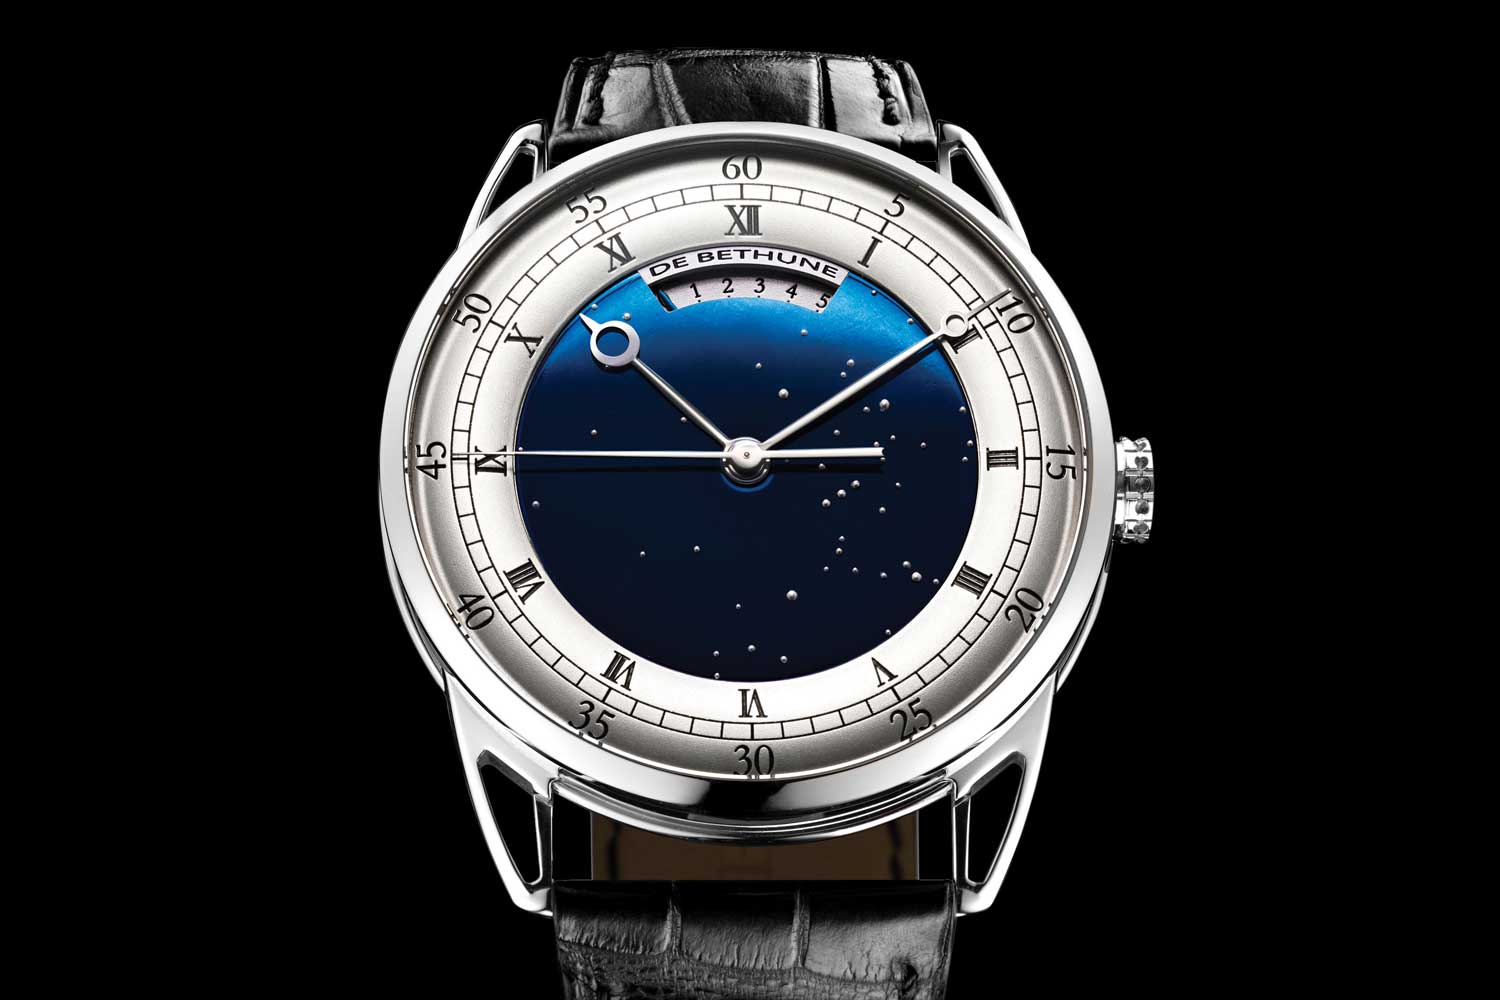 De Bethune DB25T Tourbillon Watch